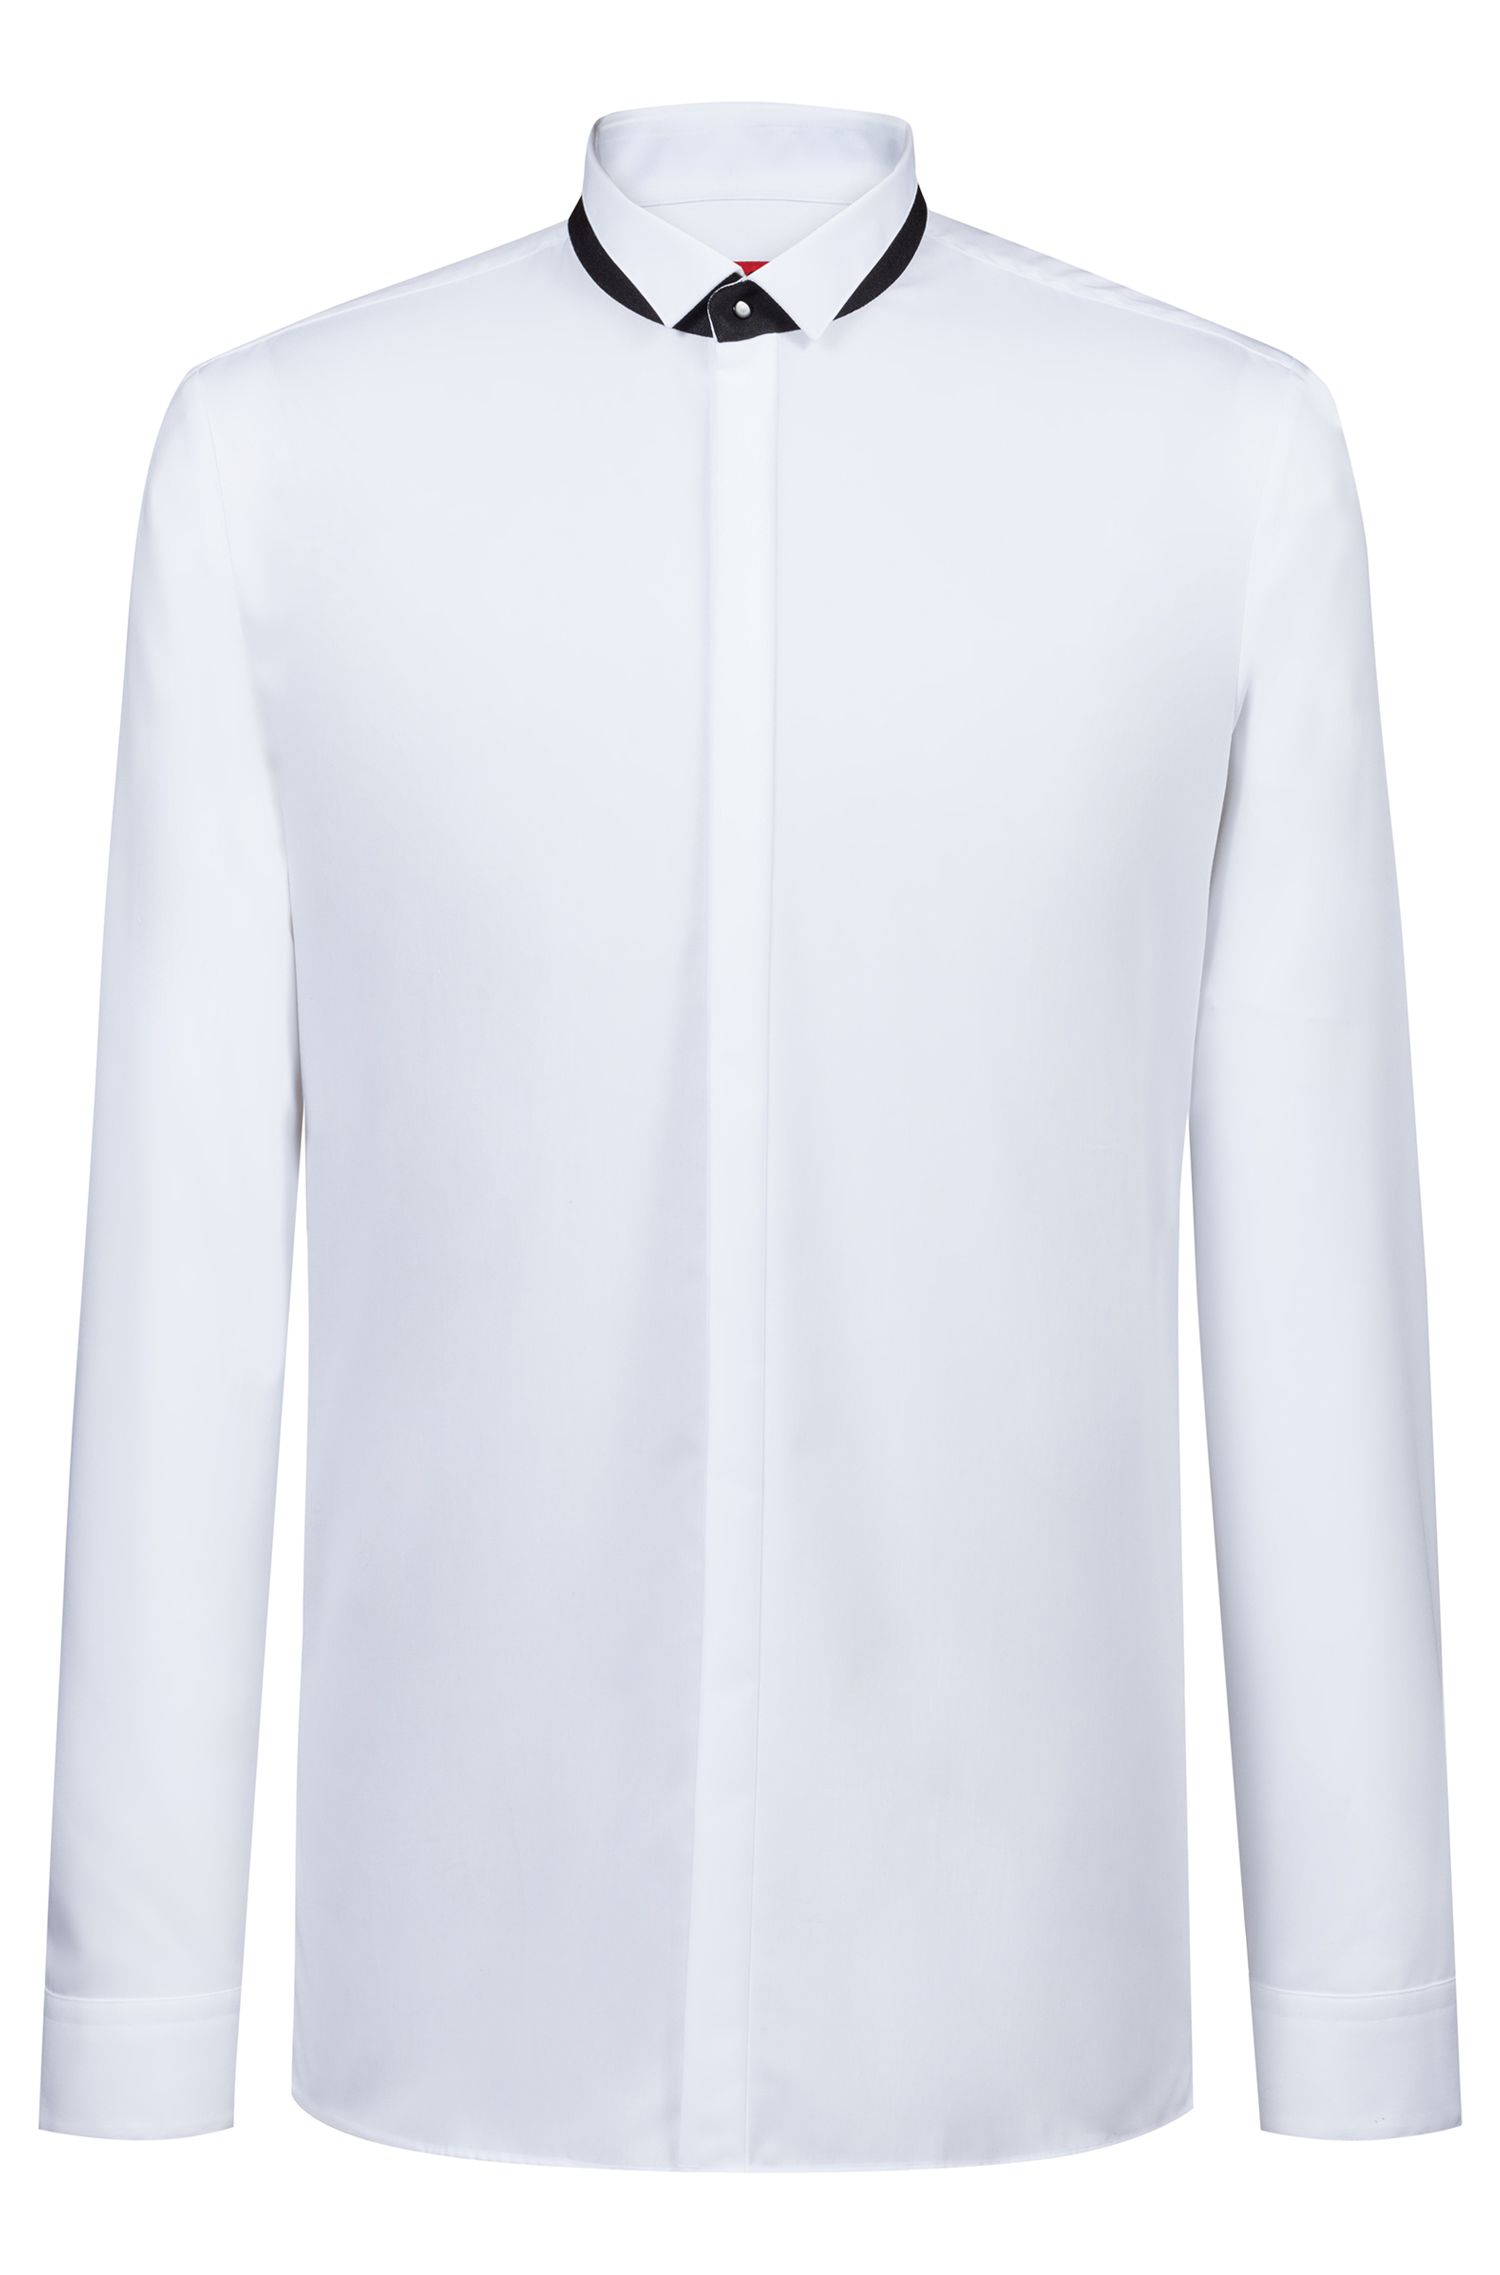 Extra-slim-fit shirt in cotton with contrast collar stand, White